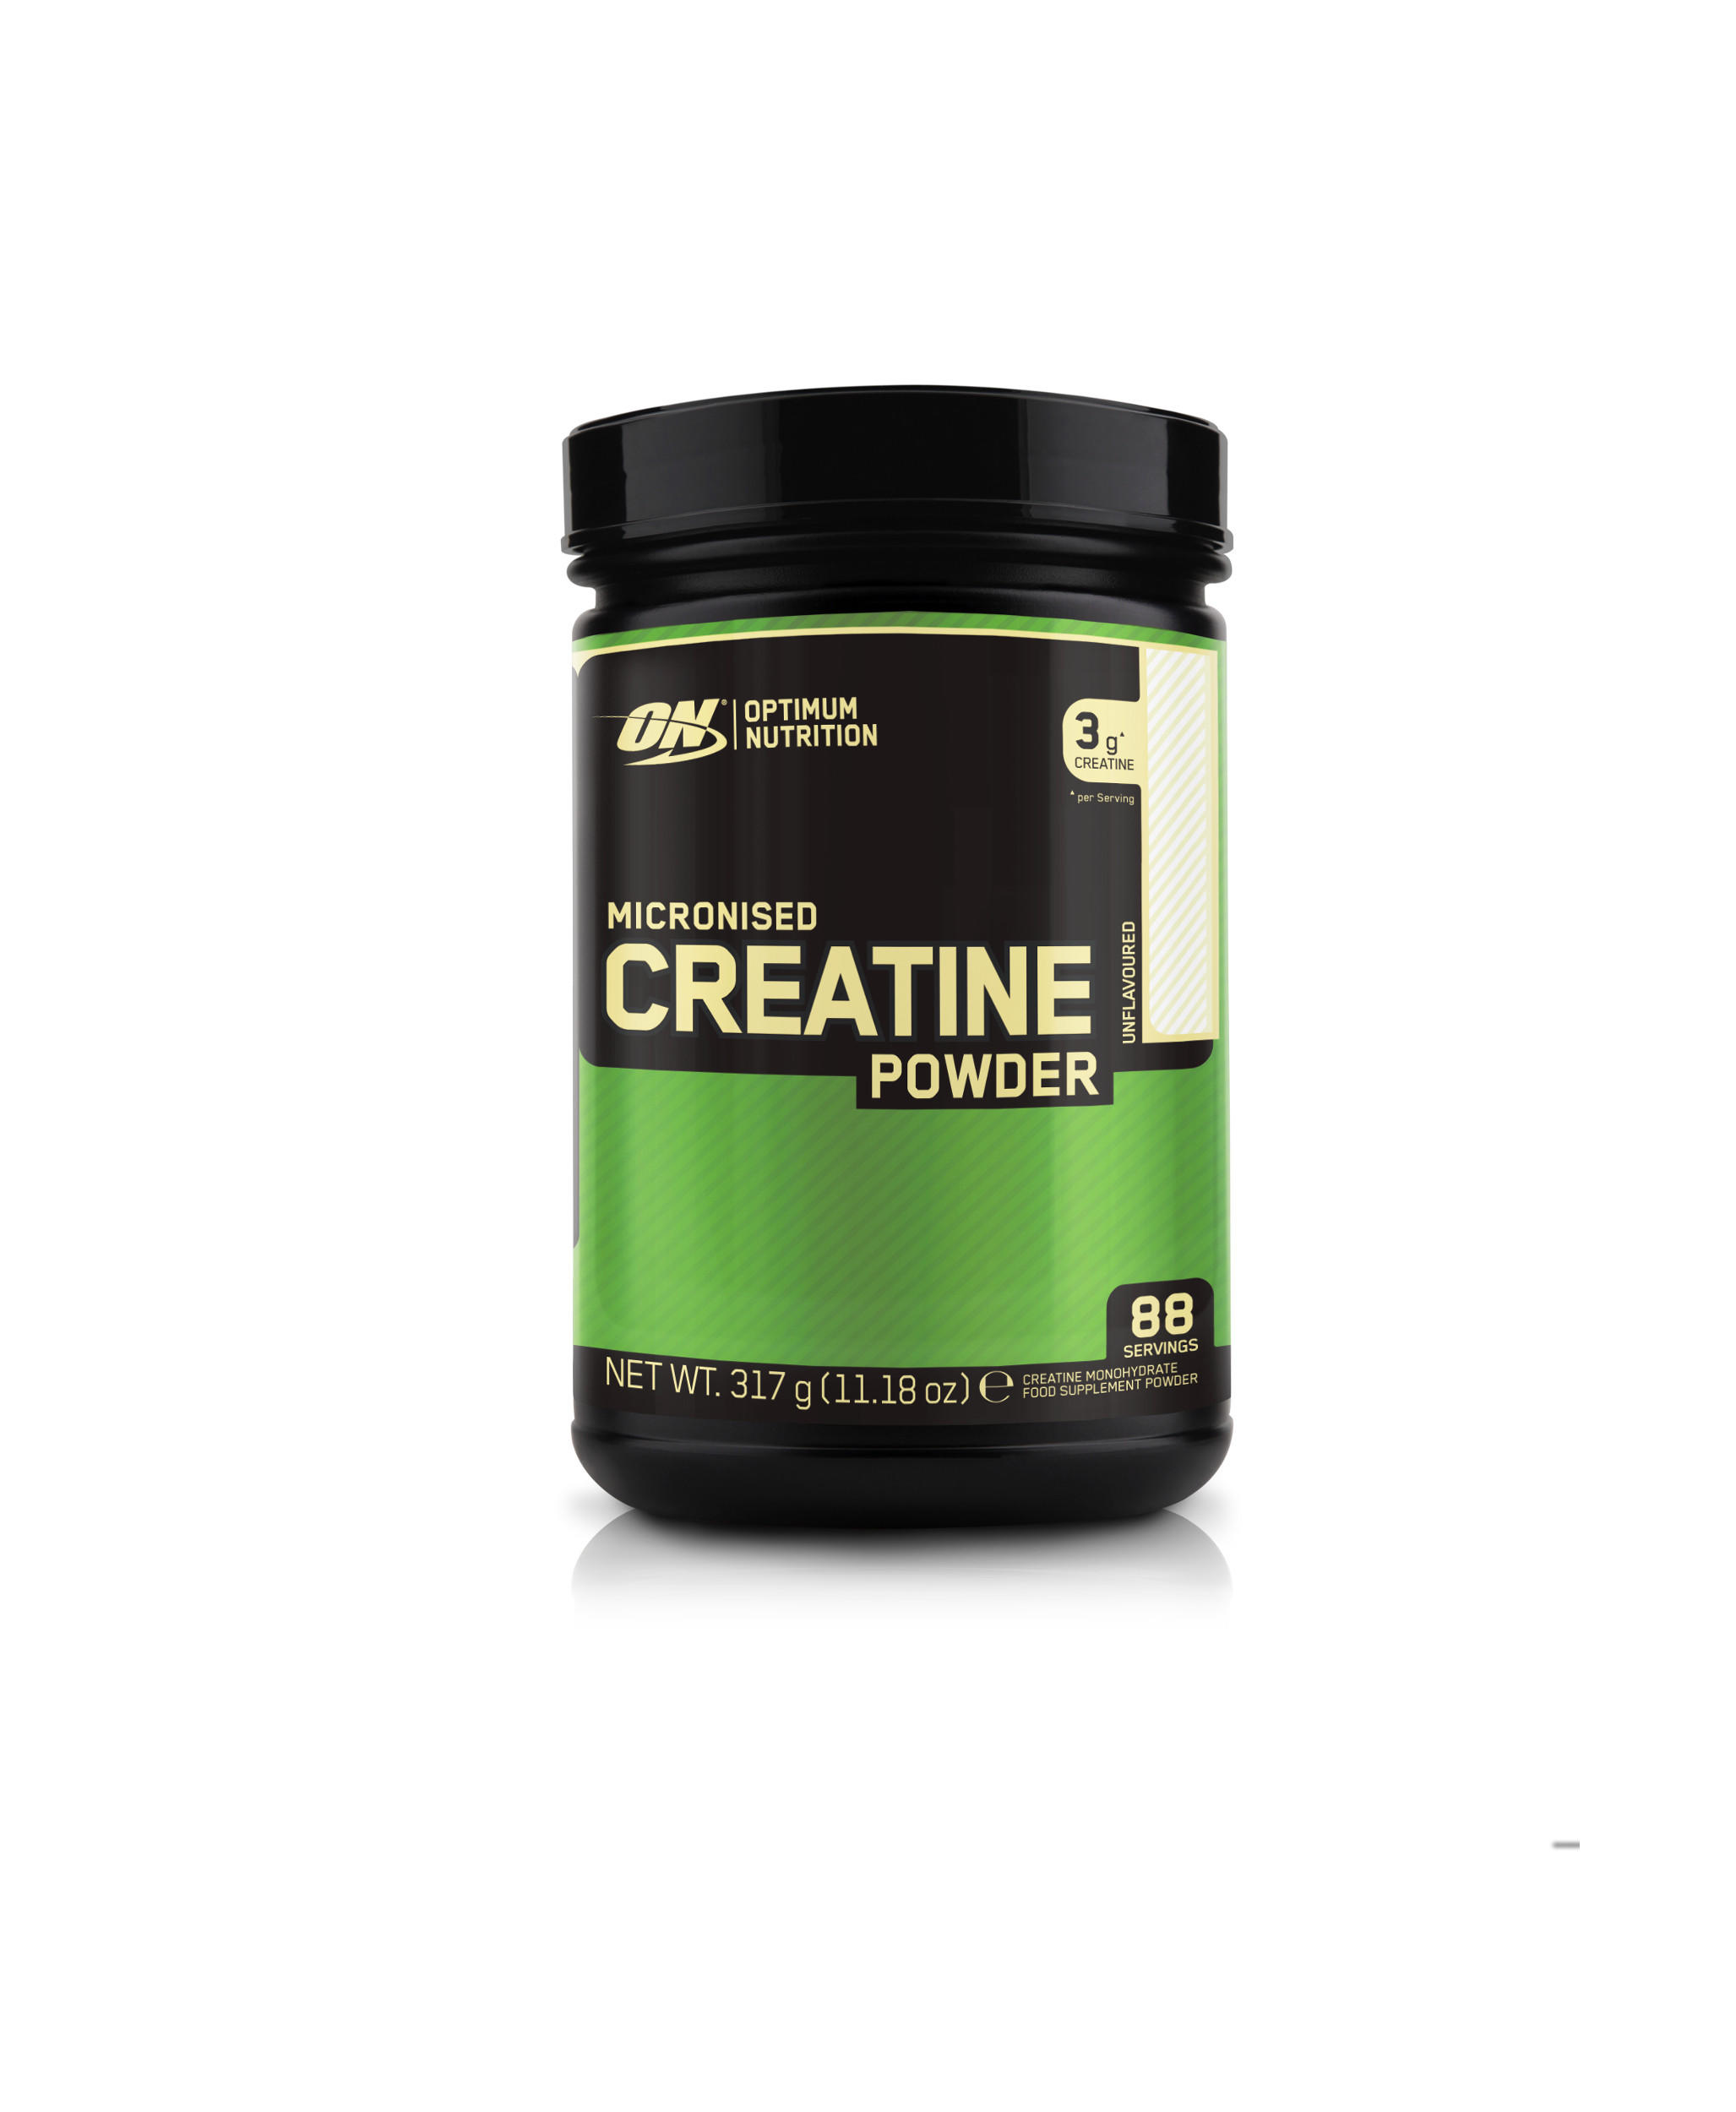 Creatină Optimum Pudră 317g OPTIMUM NUTRITION